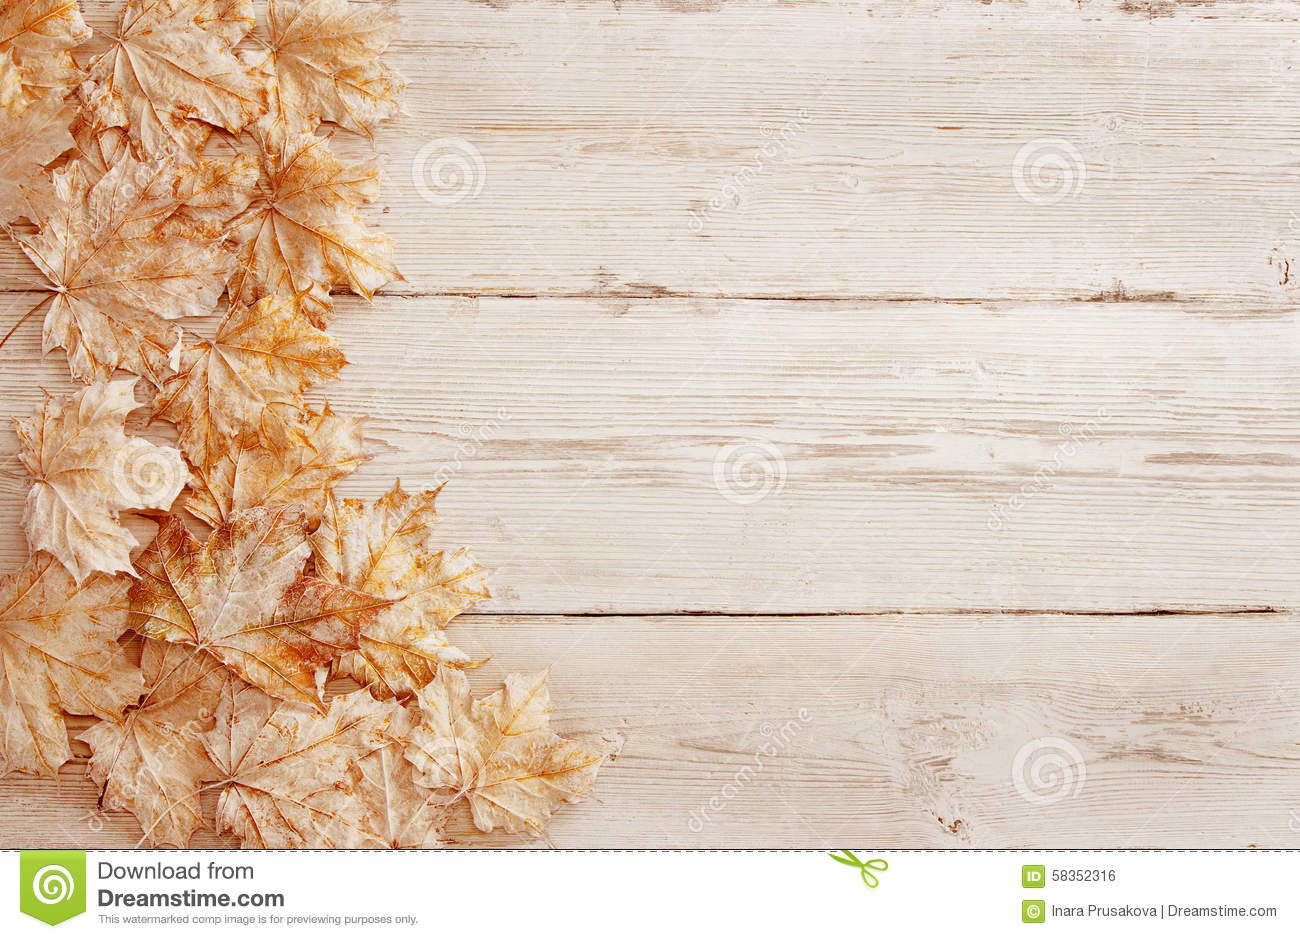 Fall Leaves Nd Burlap Wallpaper Wood Background White Leaves Wooden Grain Texture Plank